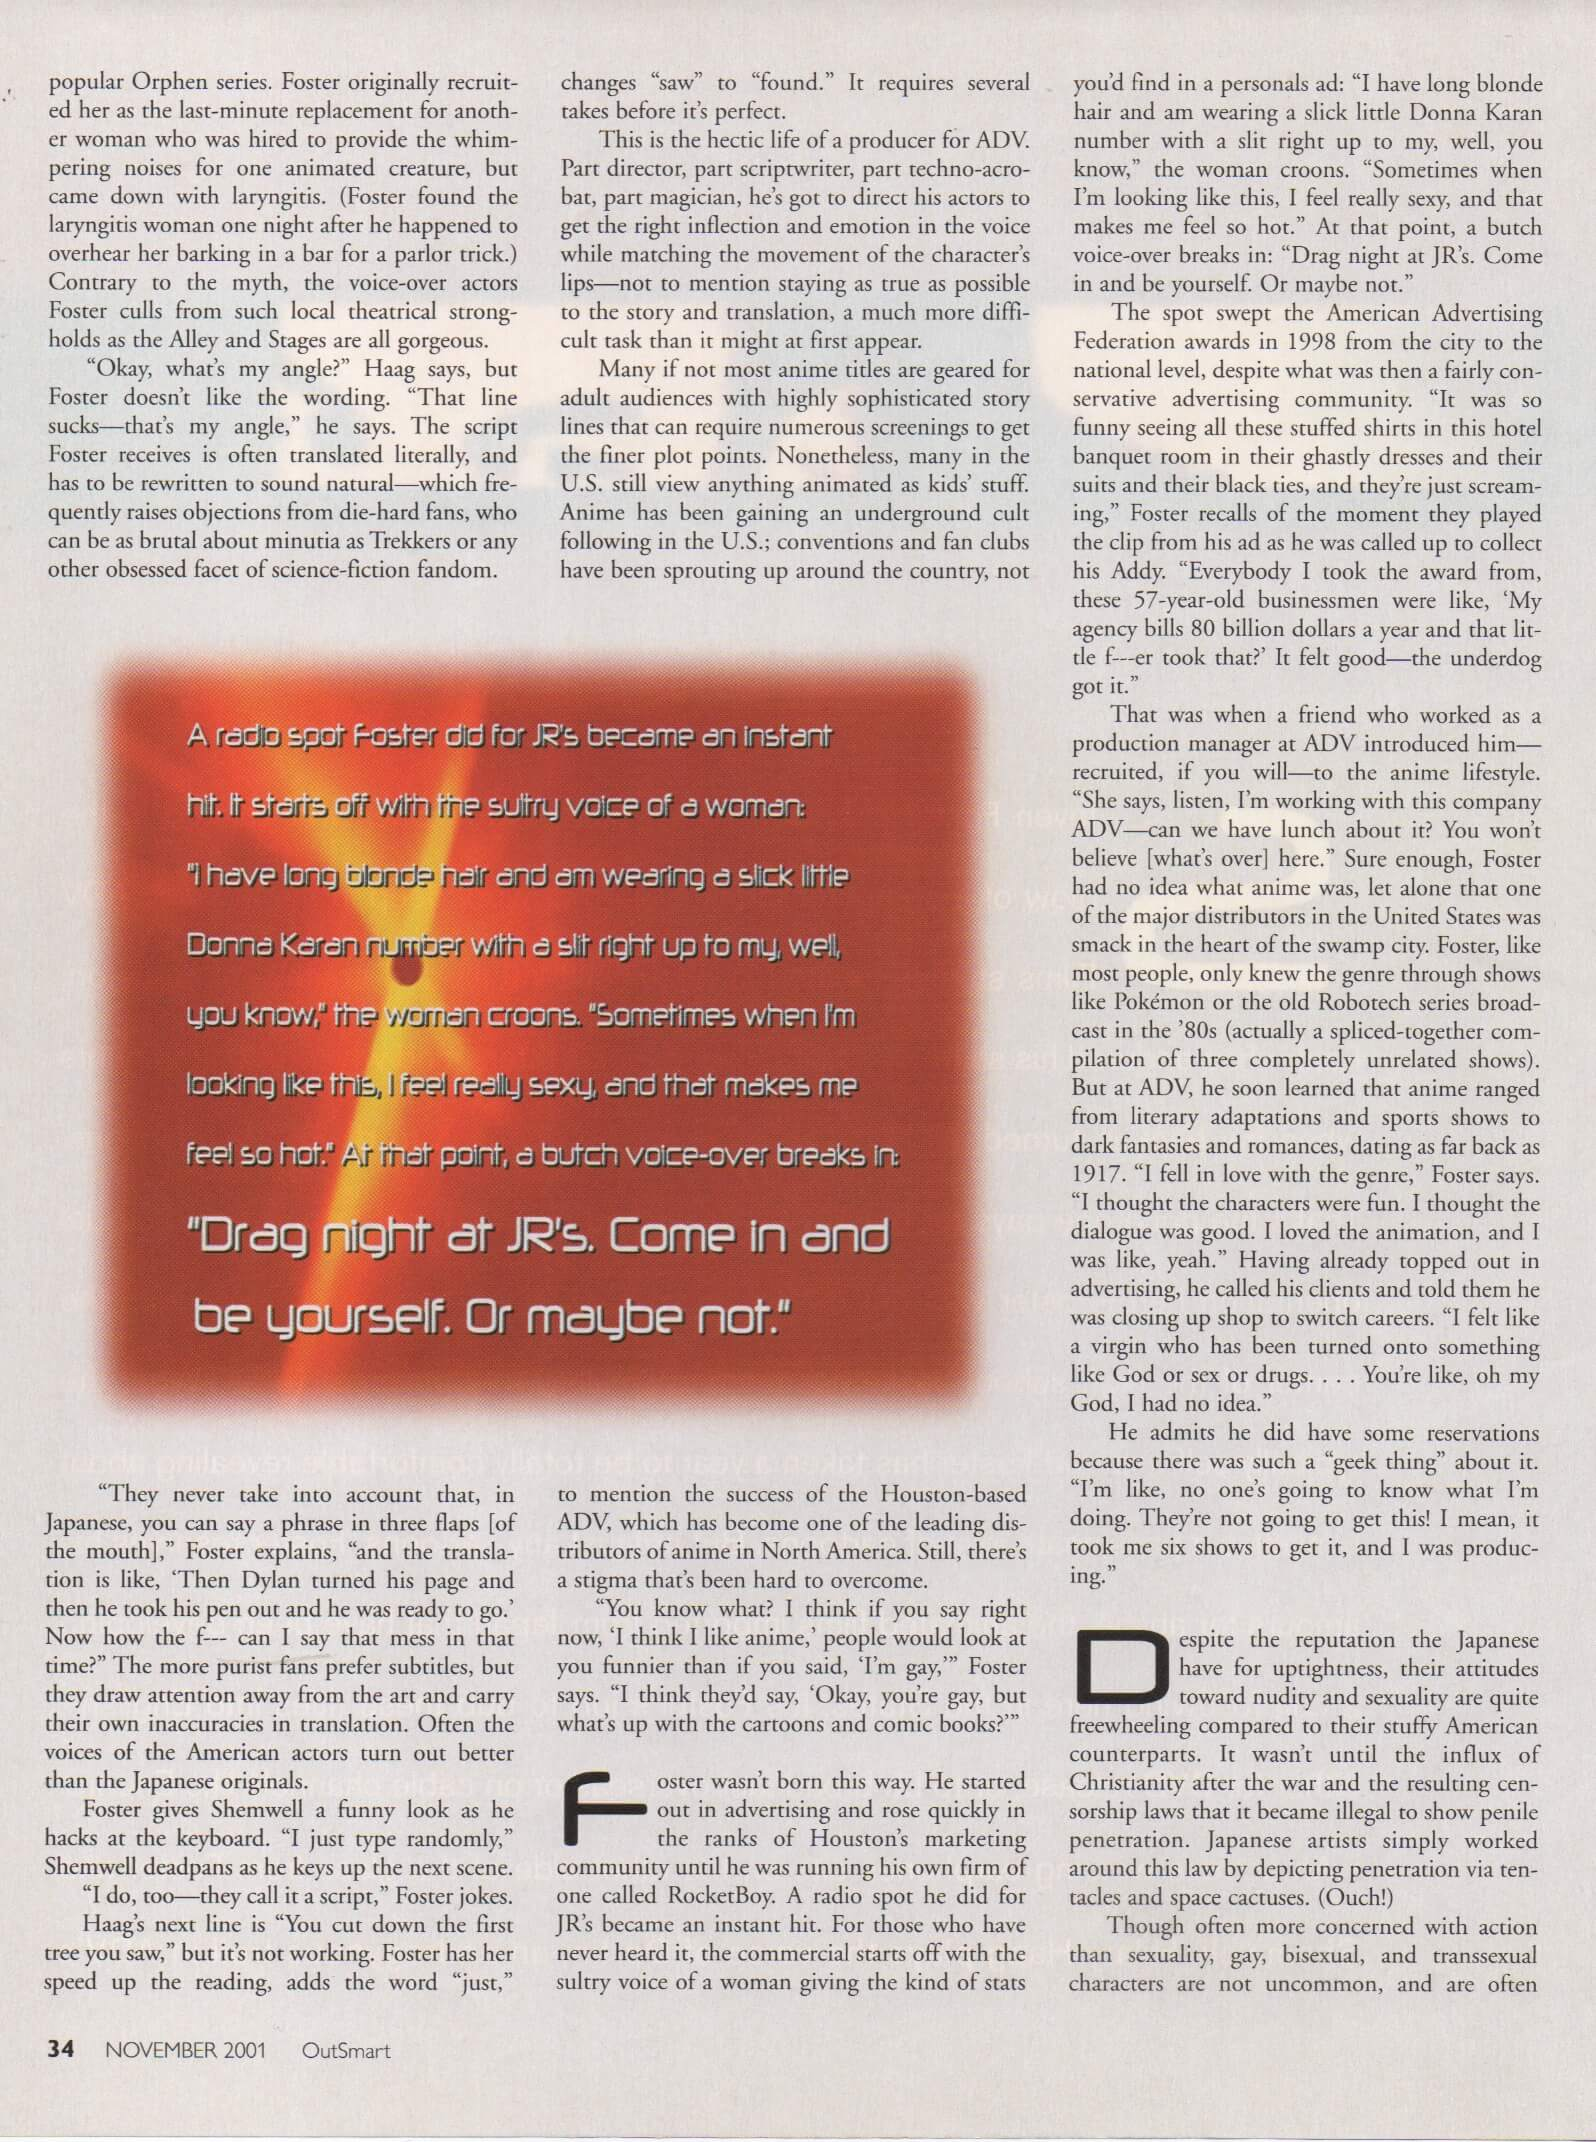 Page 3 of the OutSmart Magazine interior of the Ste7en Foster article